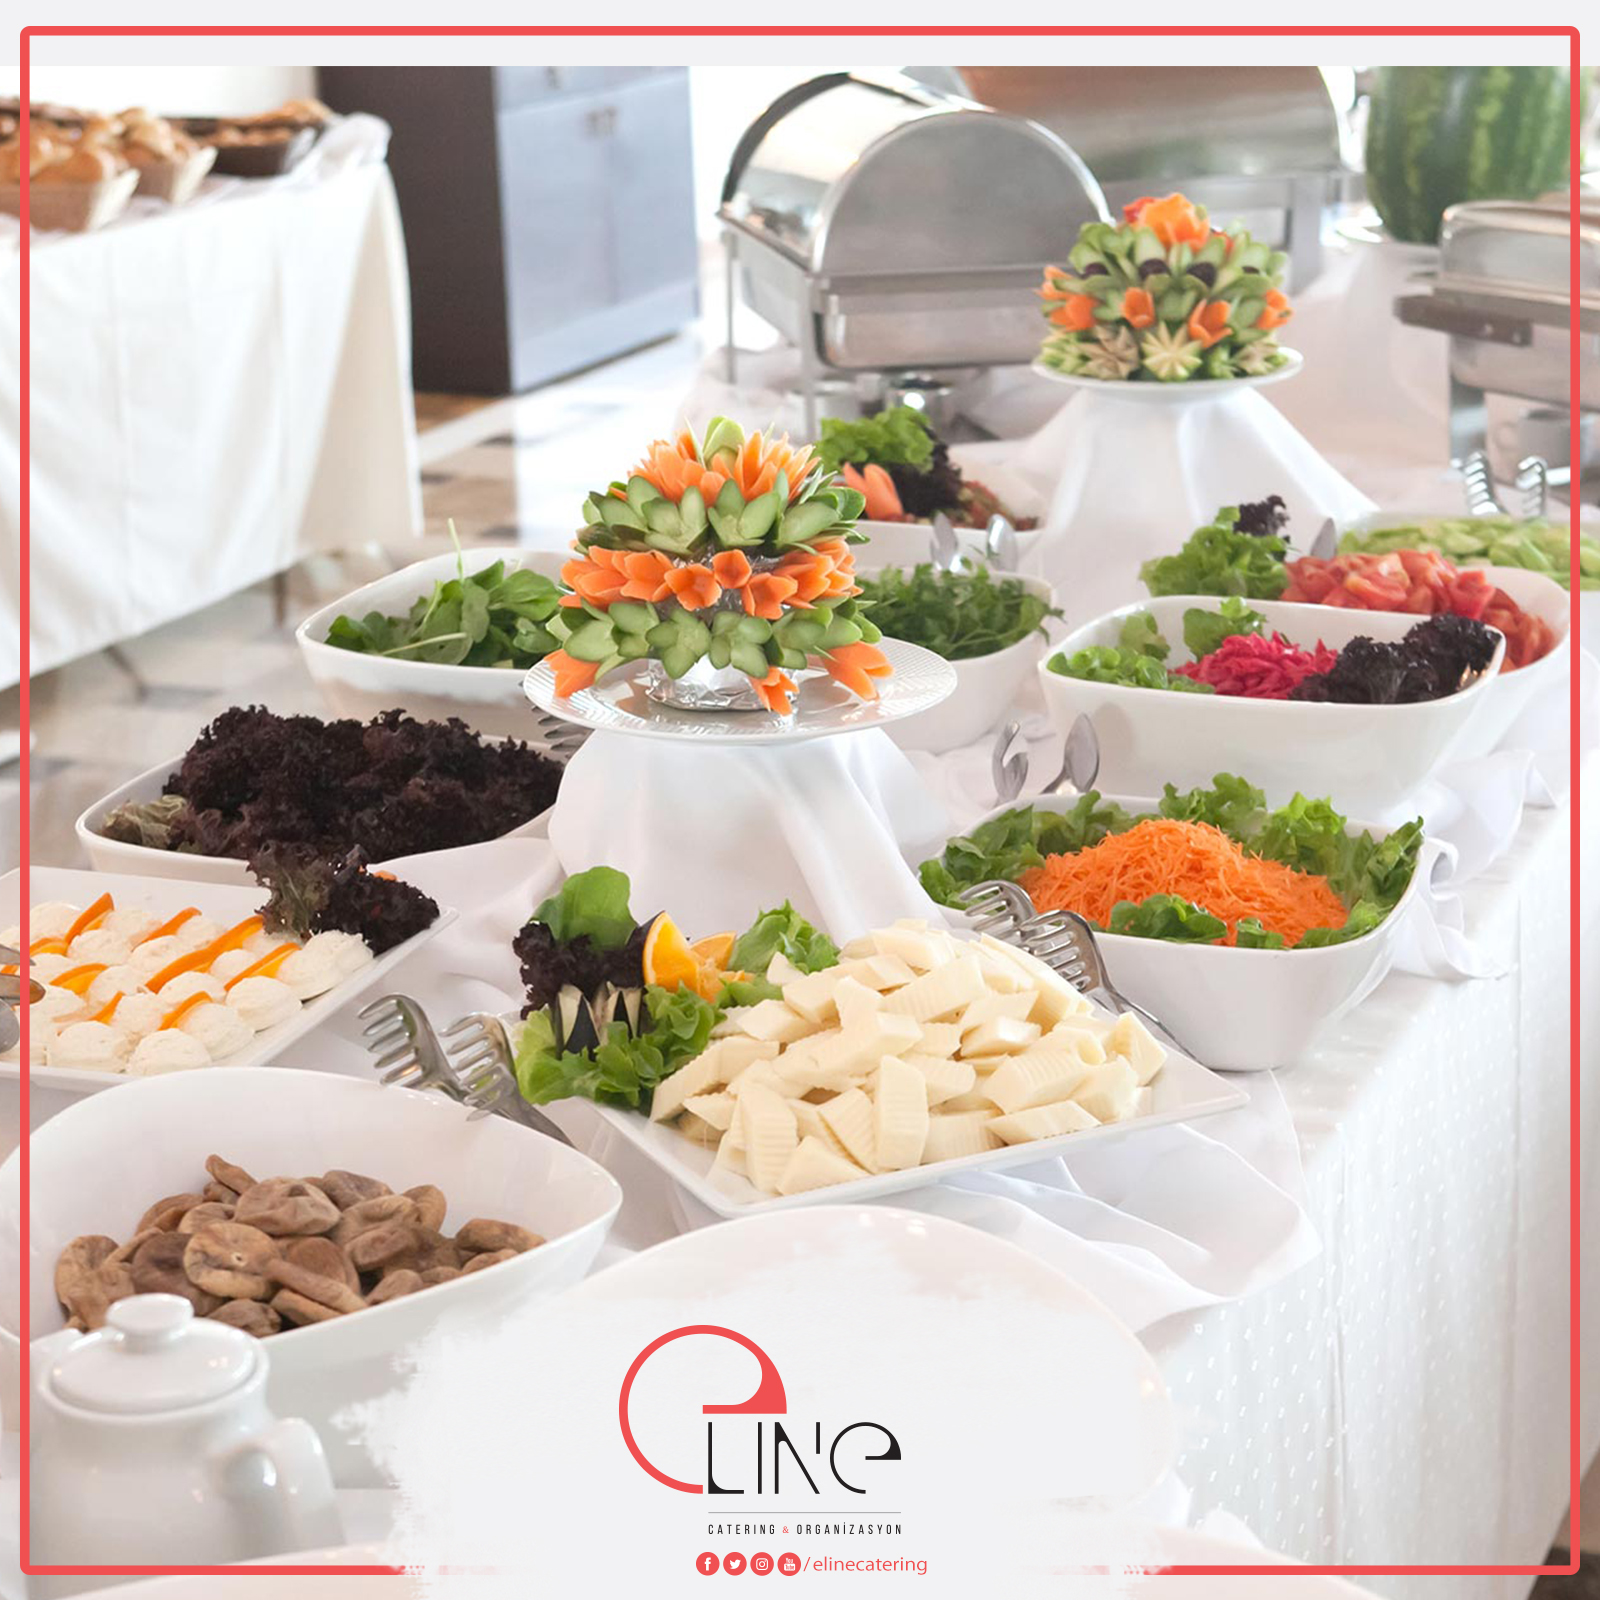 Eline Catering Catering Service